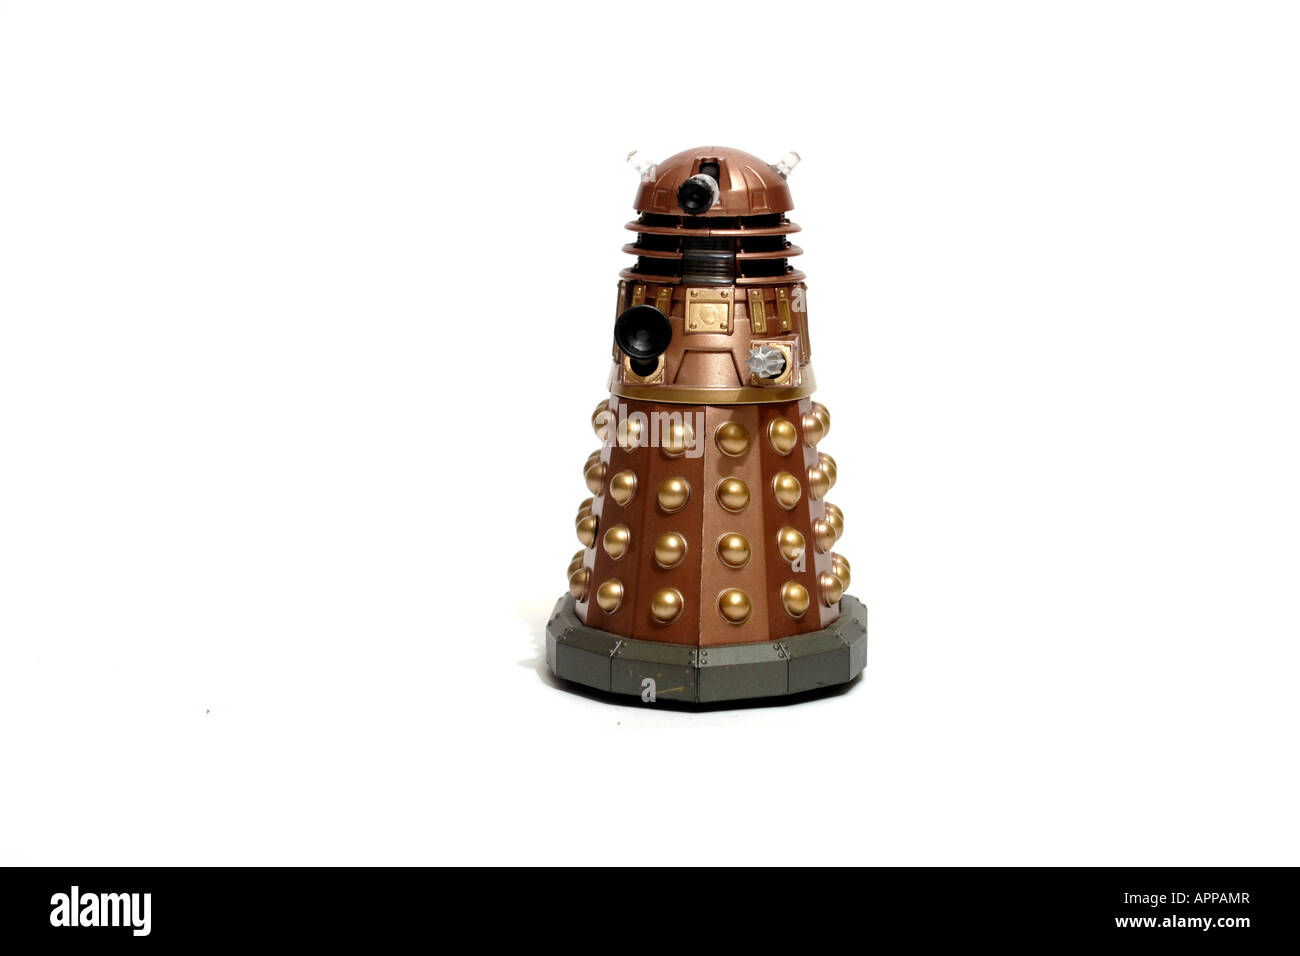 A Dalek. The Daleks are synonymous with the BBC TV series 'Doctor Who'. The Daleks are a living being in a tough - Stock Image